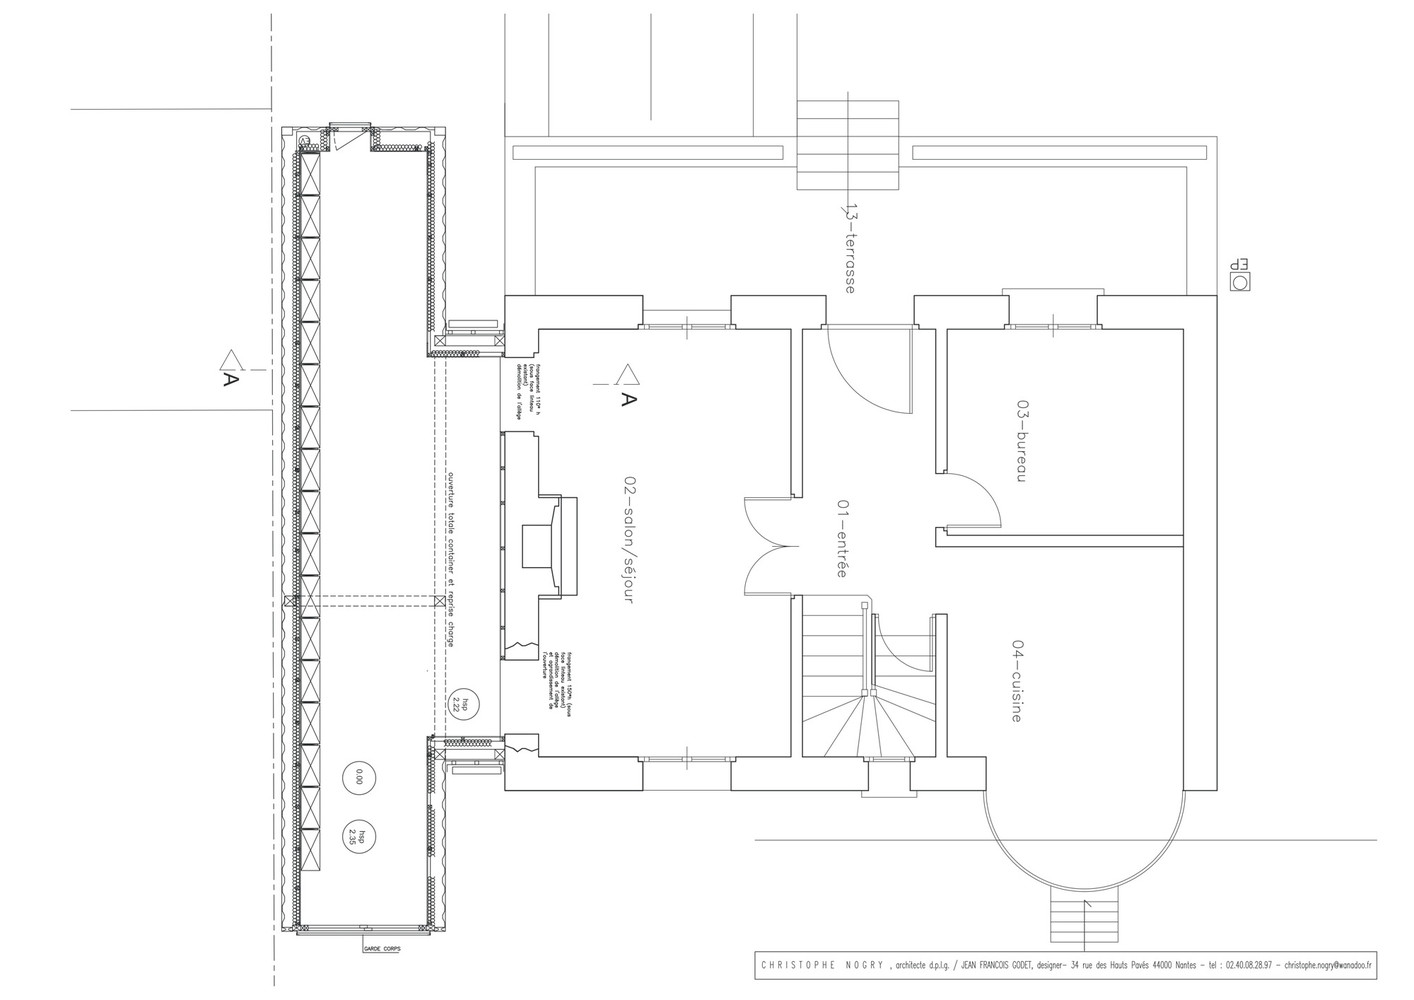 Gallery of House extension / Christophe Nogry - 27 on house investor, house layout, house styles, house bed, house services, house logo, house investigator, house interior ideas, house design, house plans, house journal, house painter, house powerpoint, house construction, house architect, house fans, house planning, house project, house family, house worker,